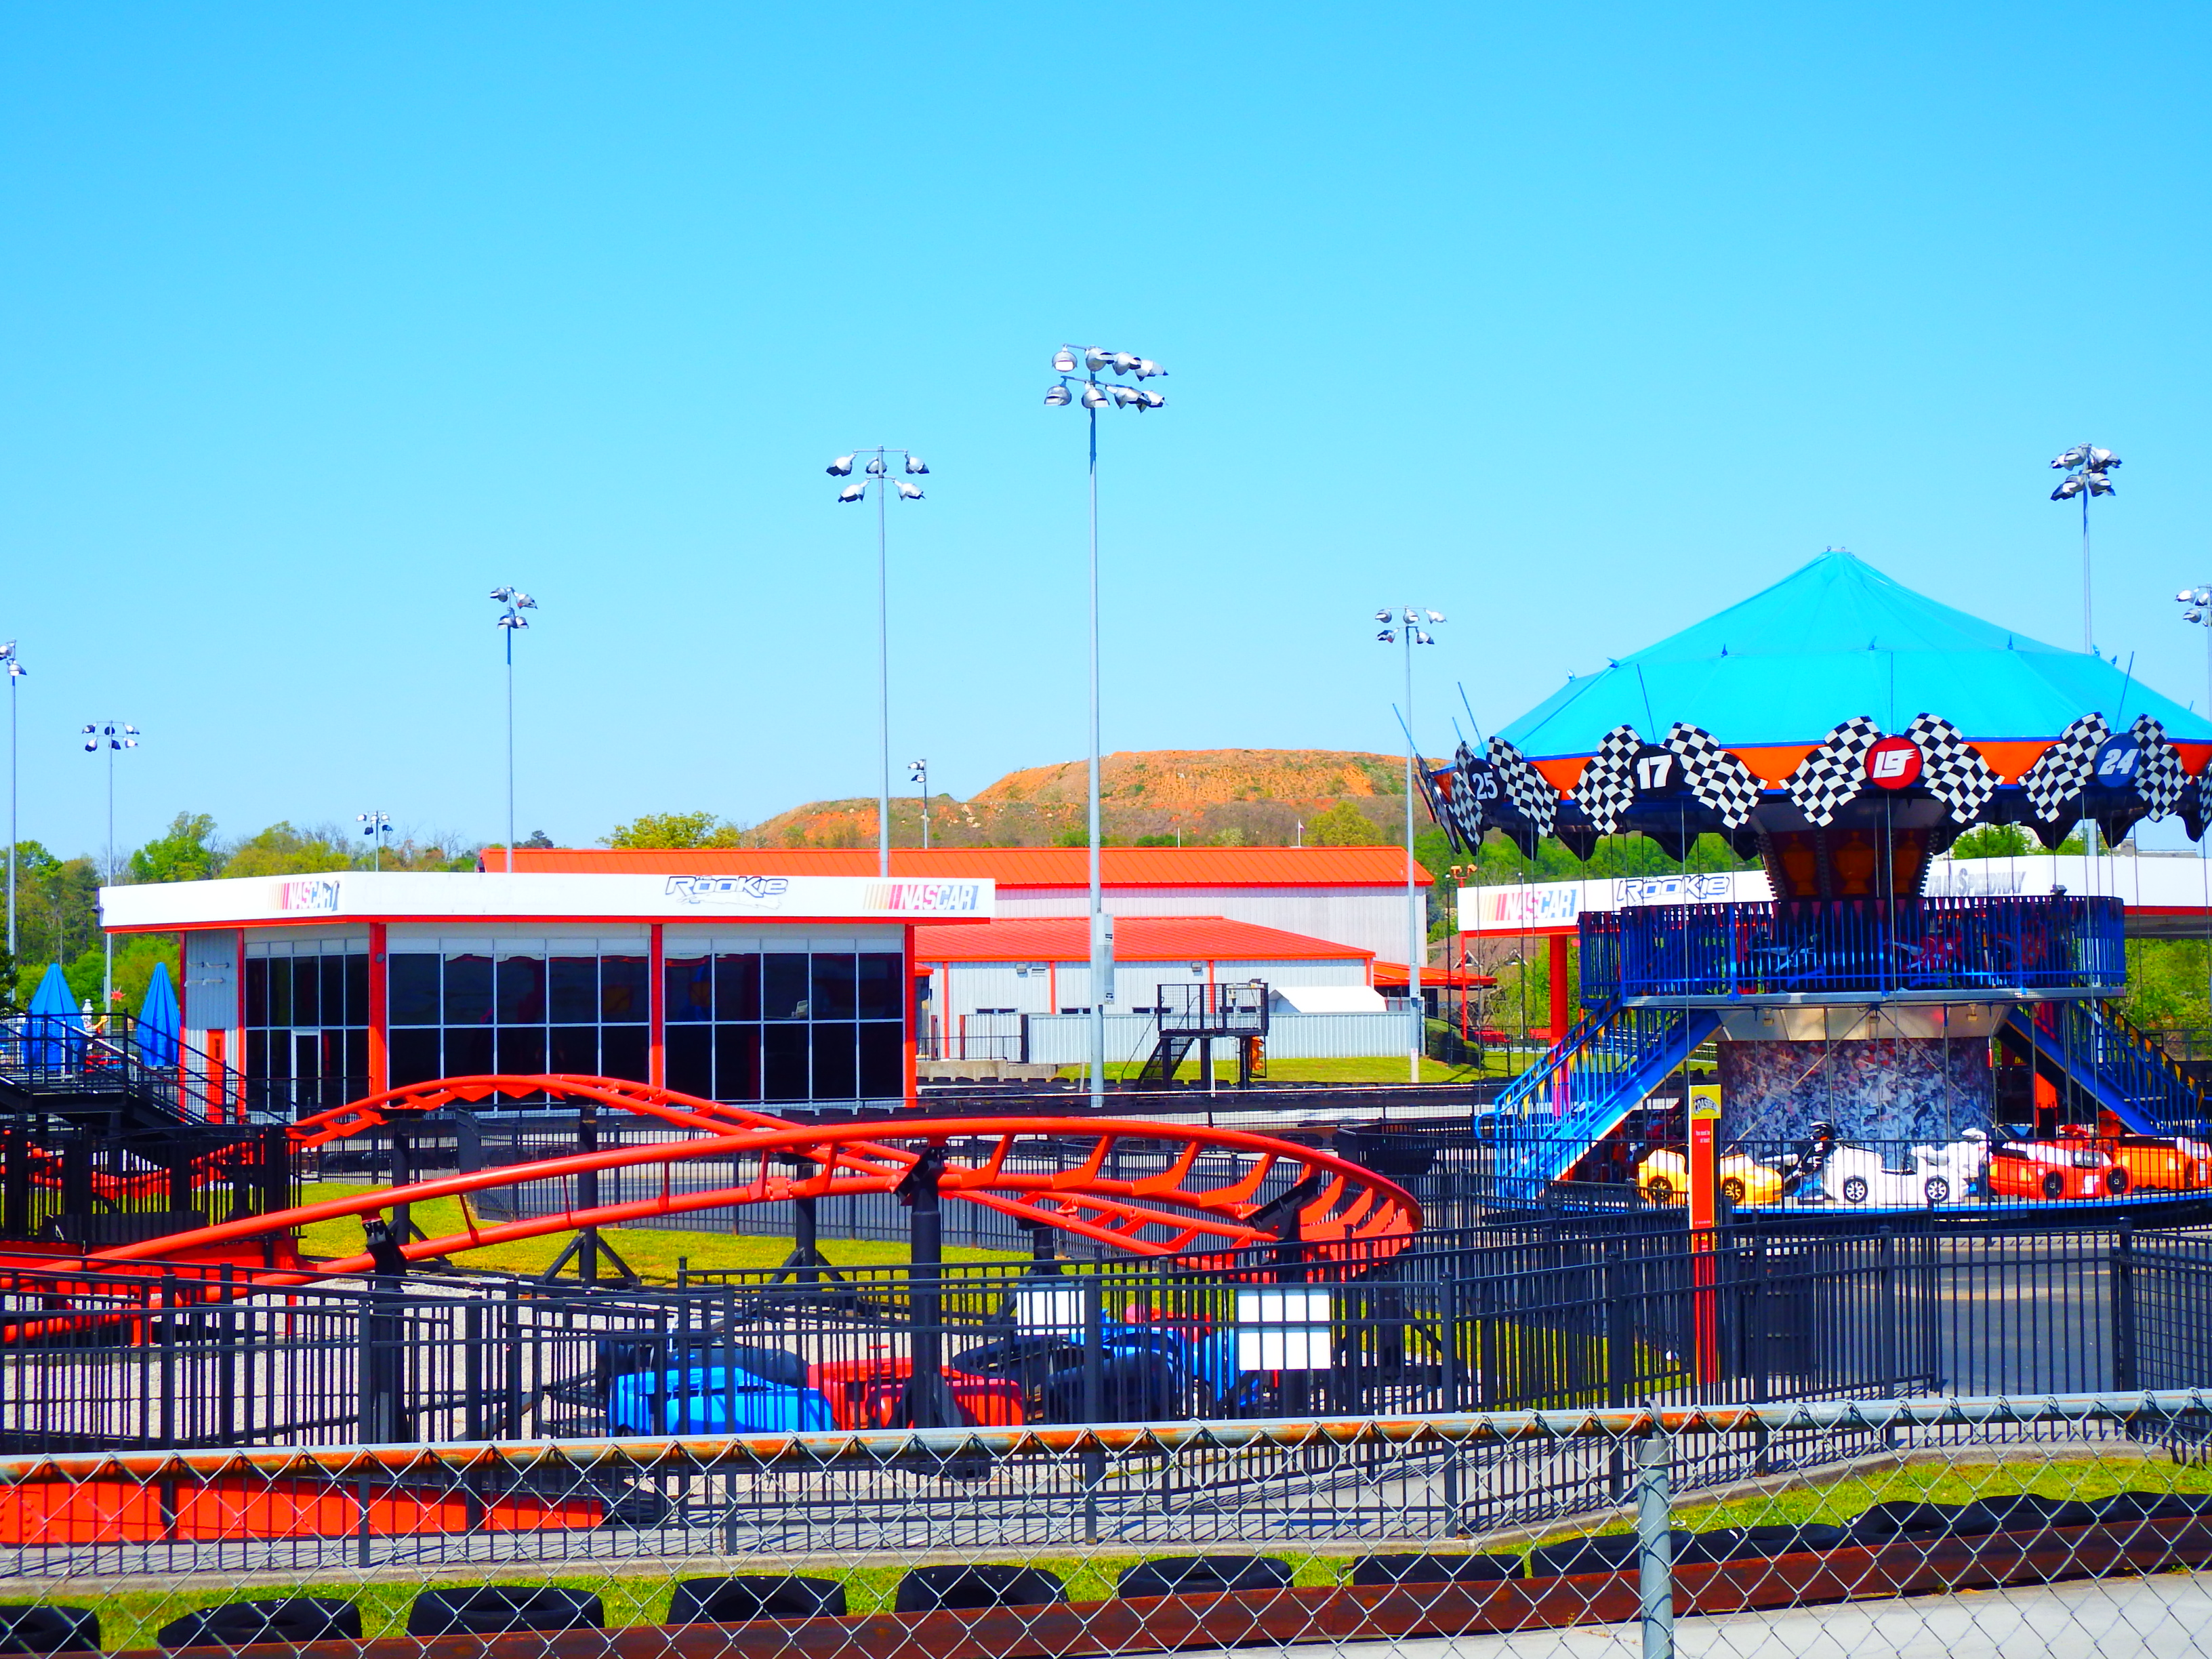 Nascar Speed Park in Pigeon is the place for family fun!